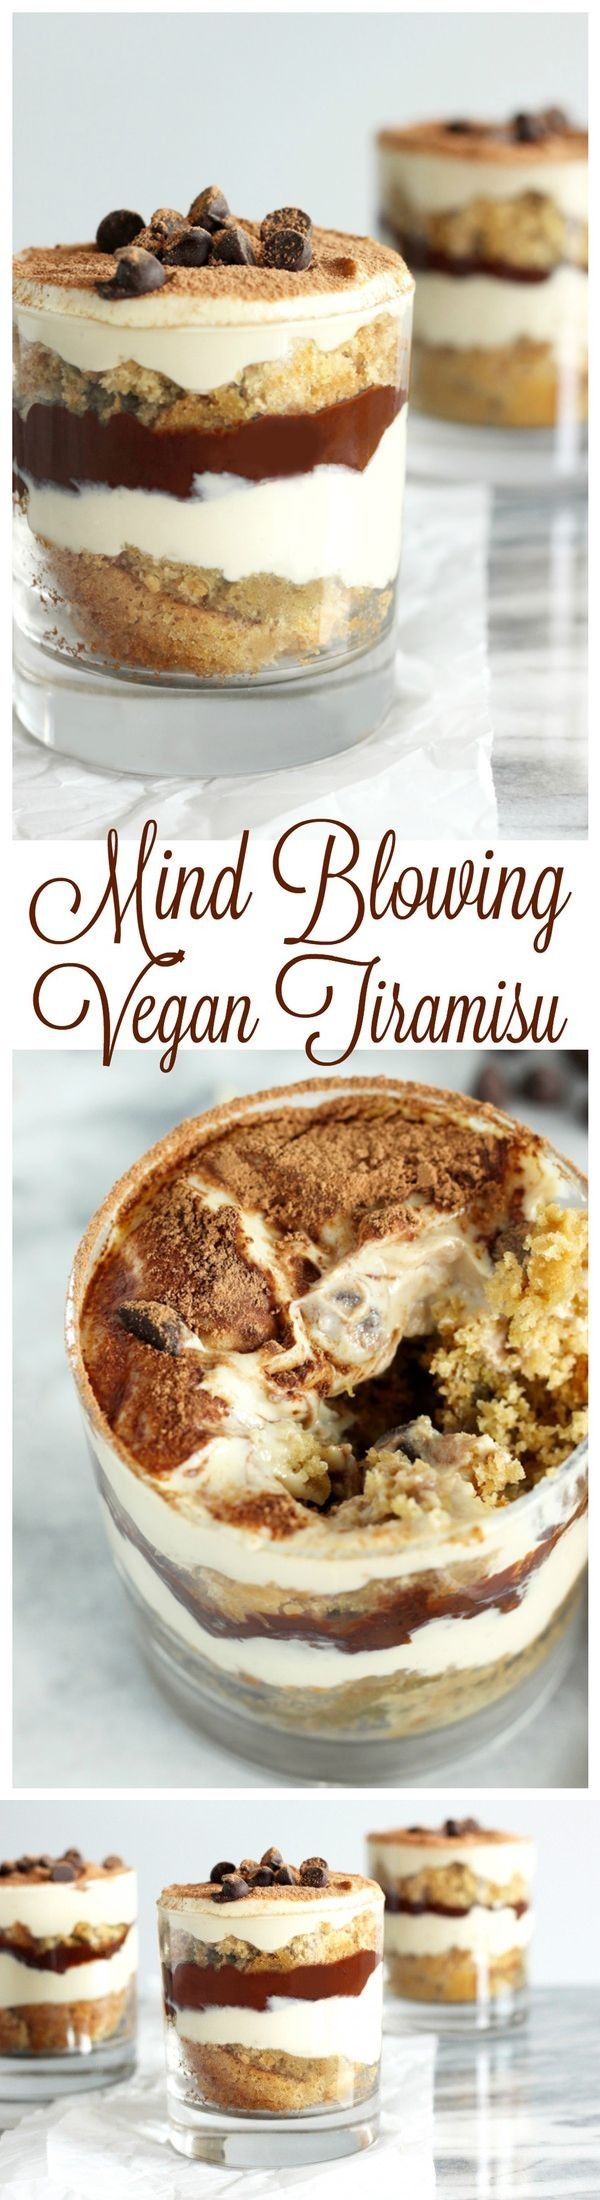 Mind Blowing Vegan Tiramisu